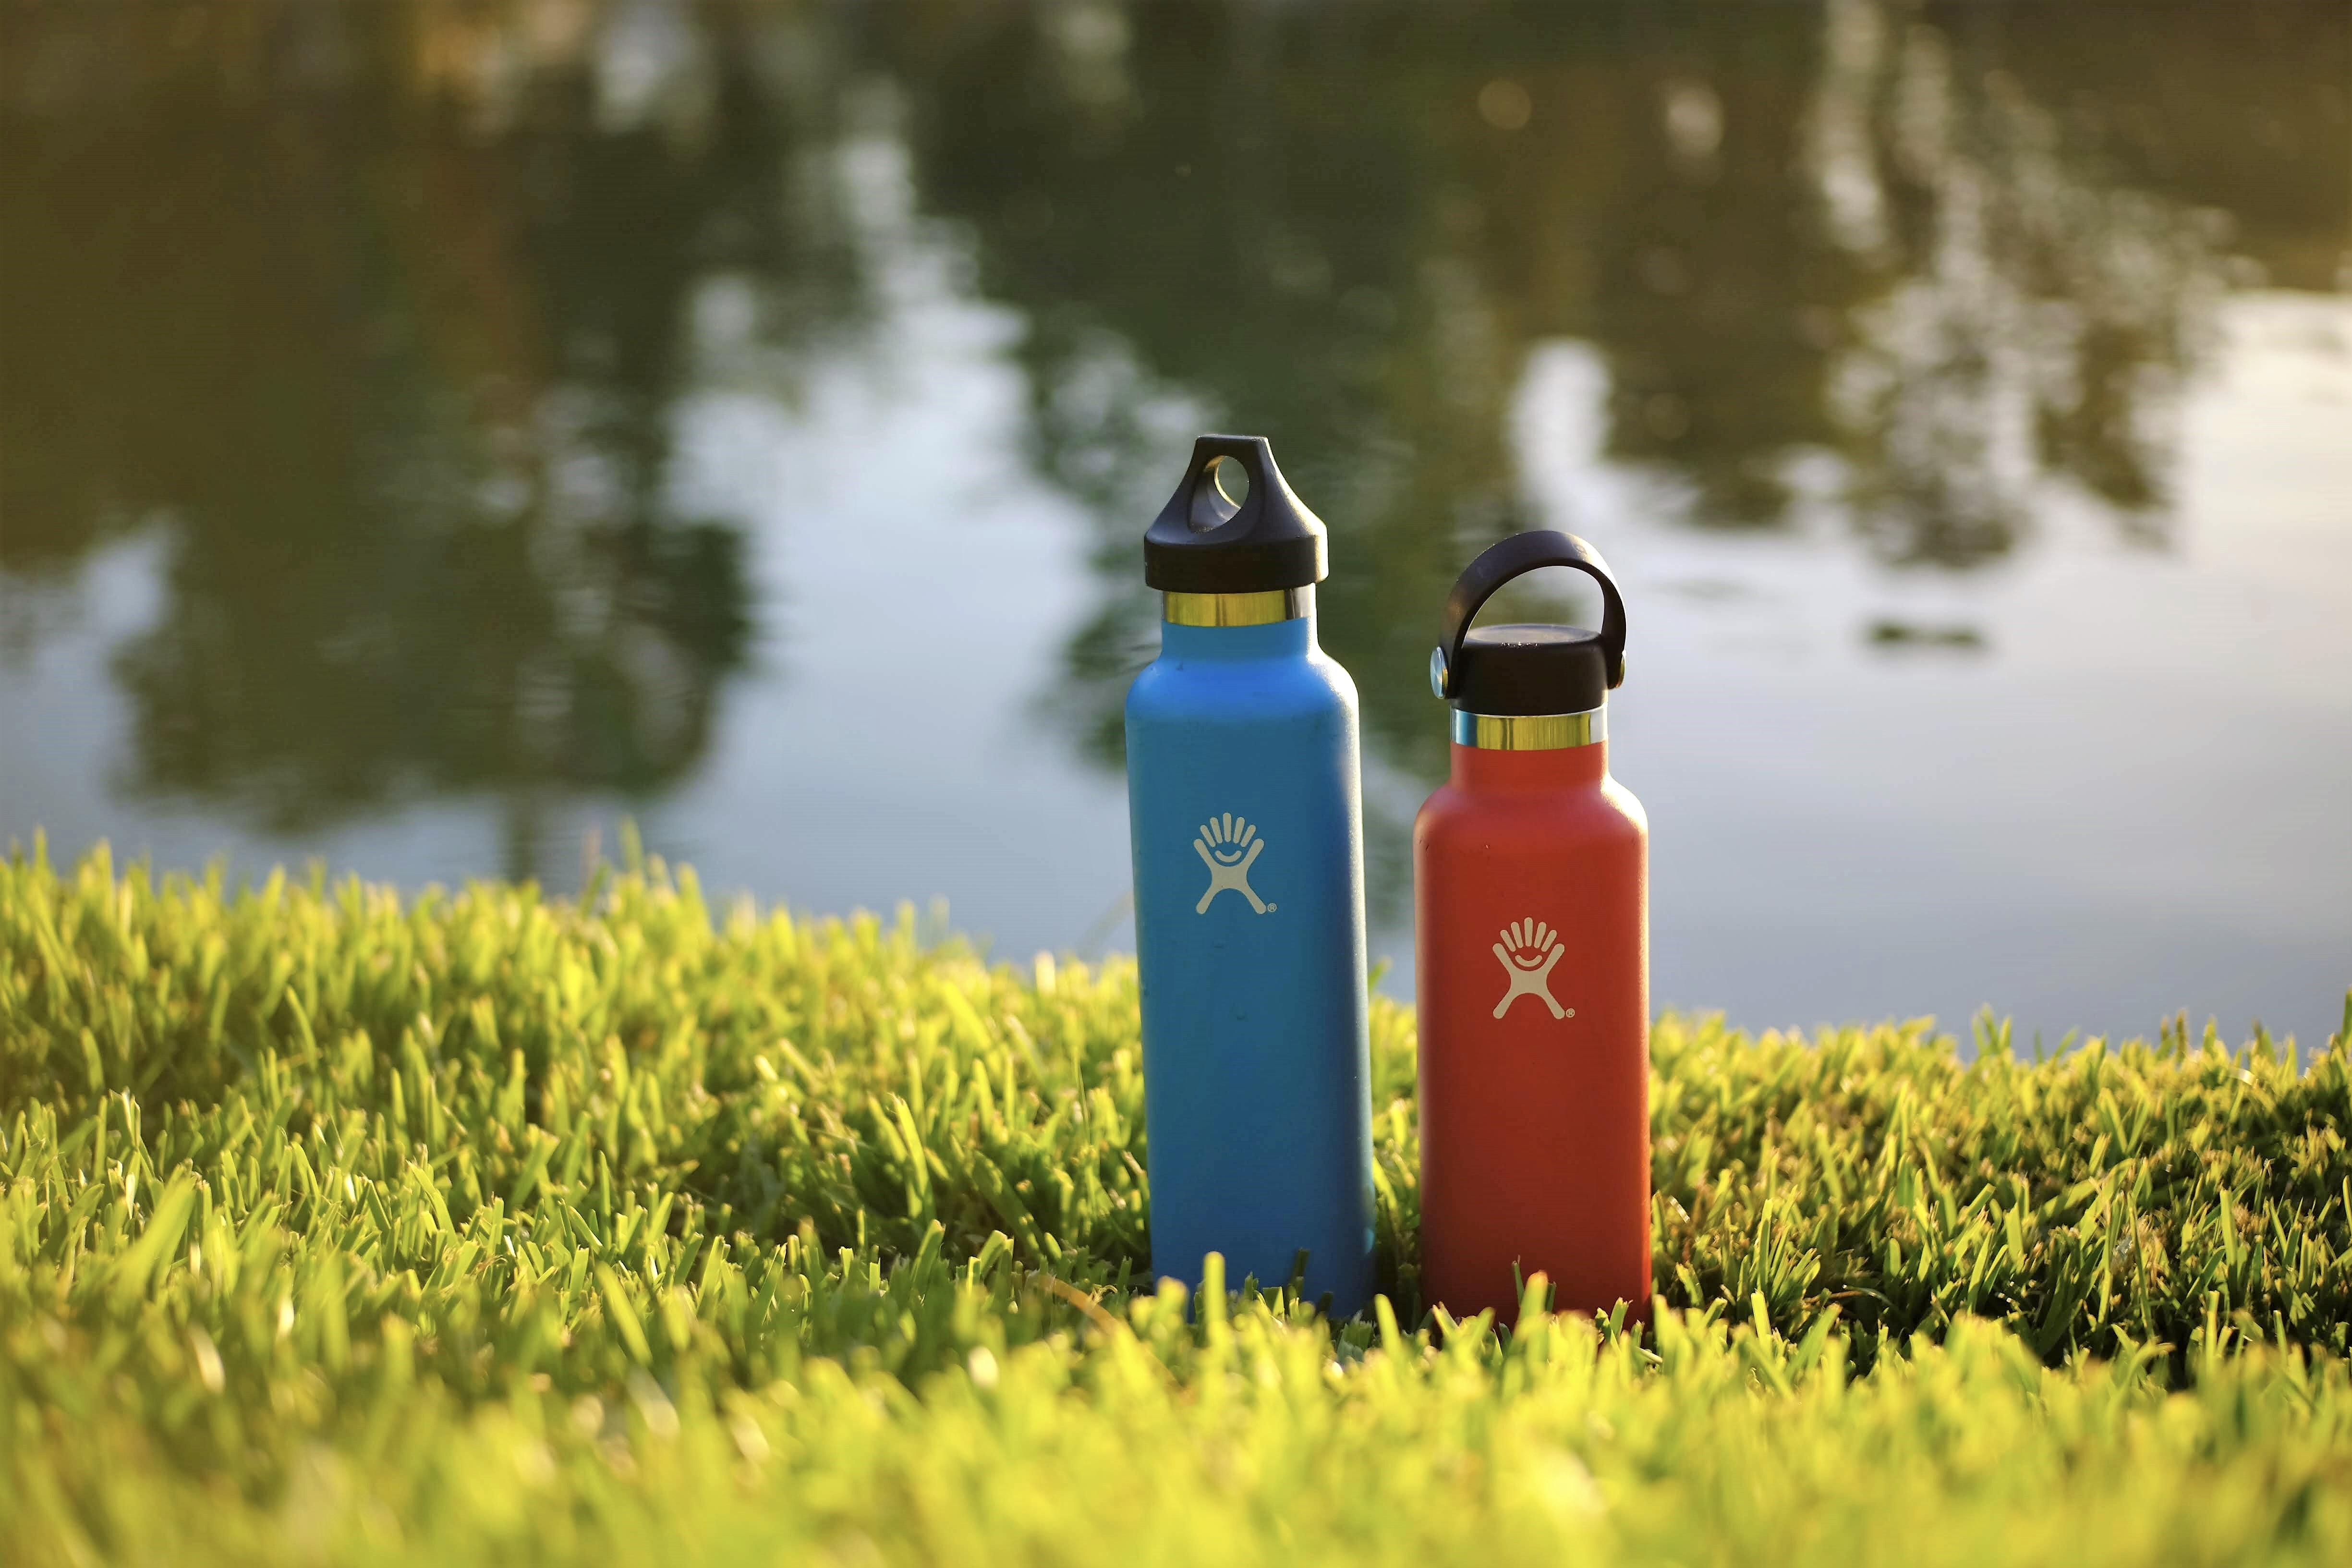 blue and red sports bottle on green grass near body of water during daytime